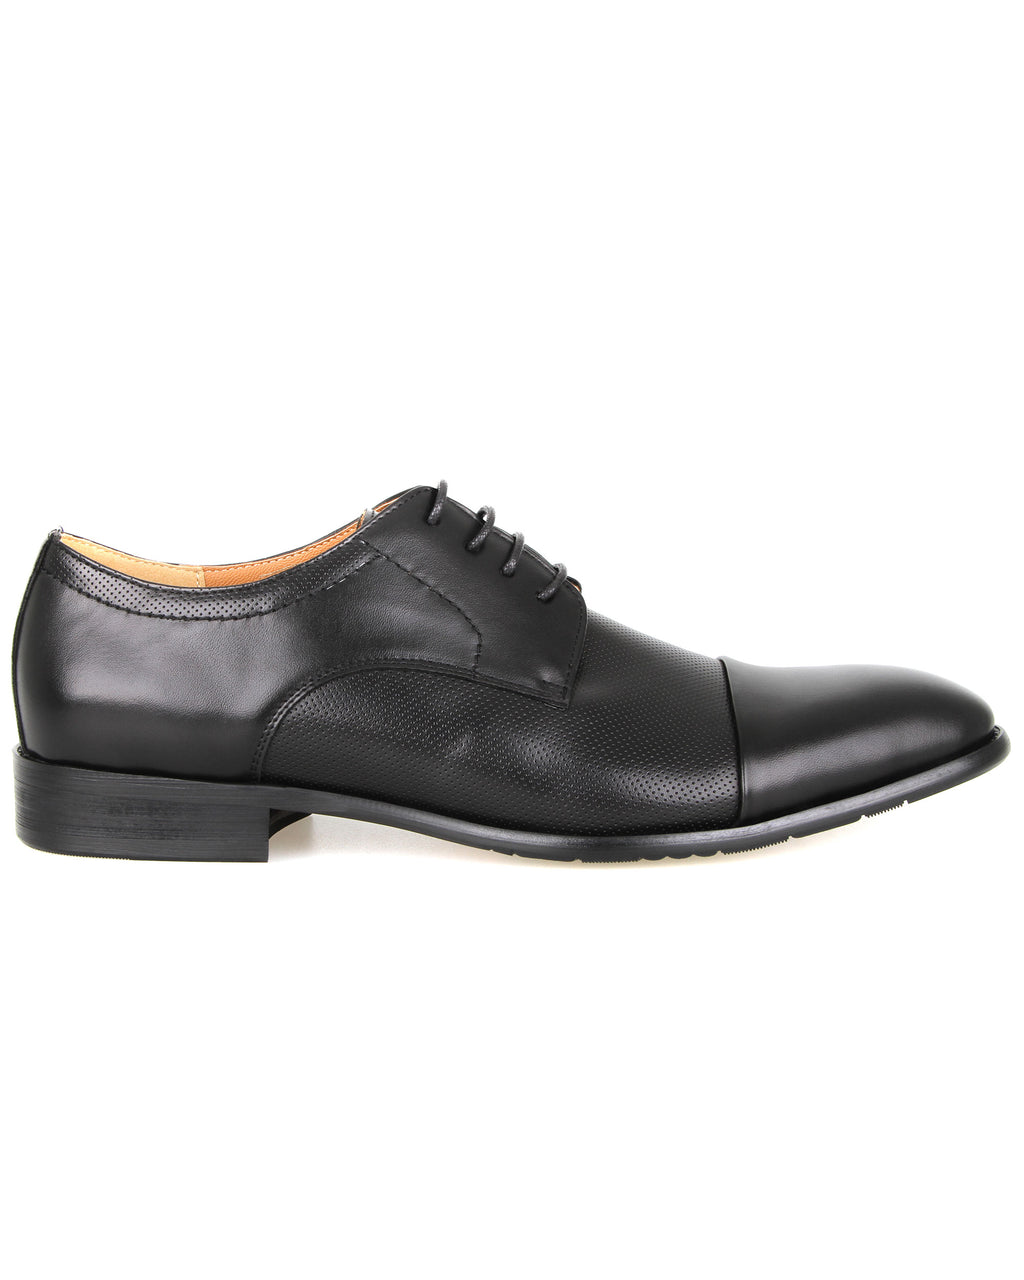 Tomaz F233 Derby Lace Up Formals (Black)